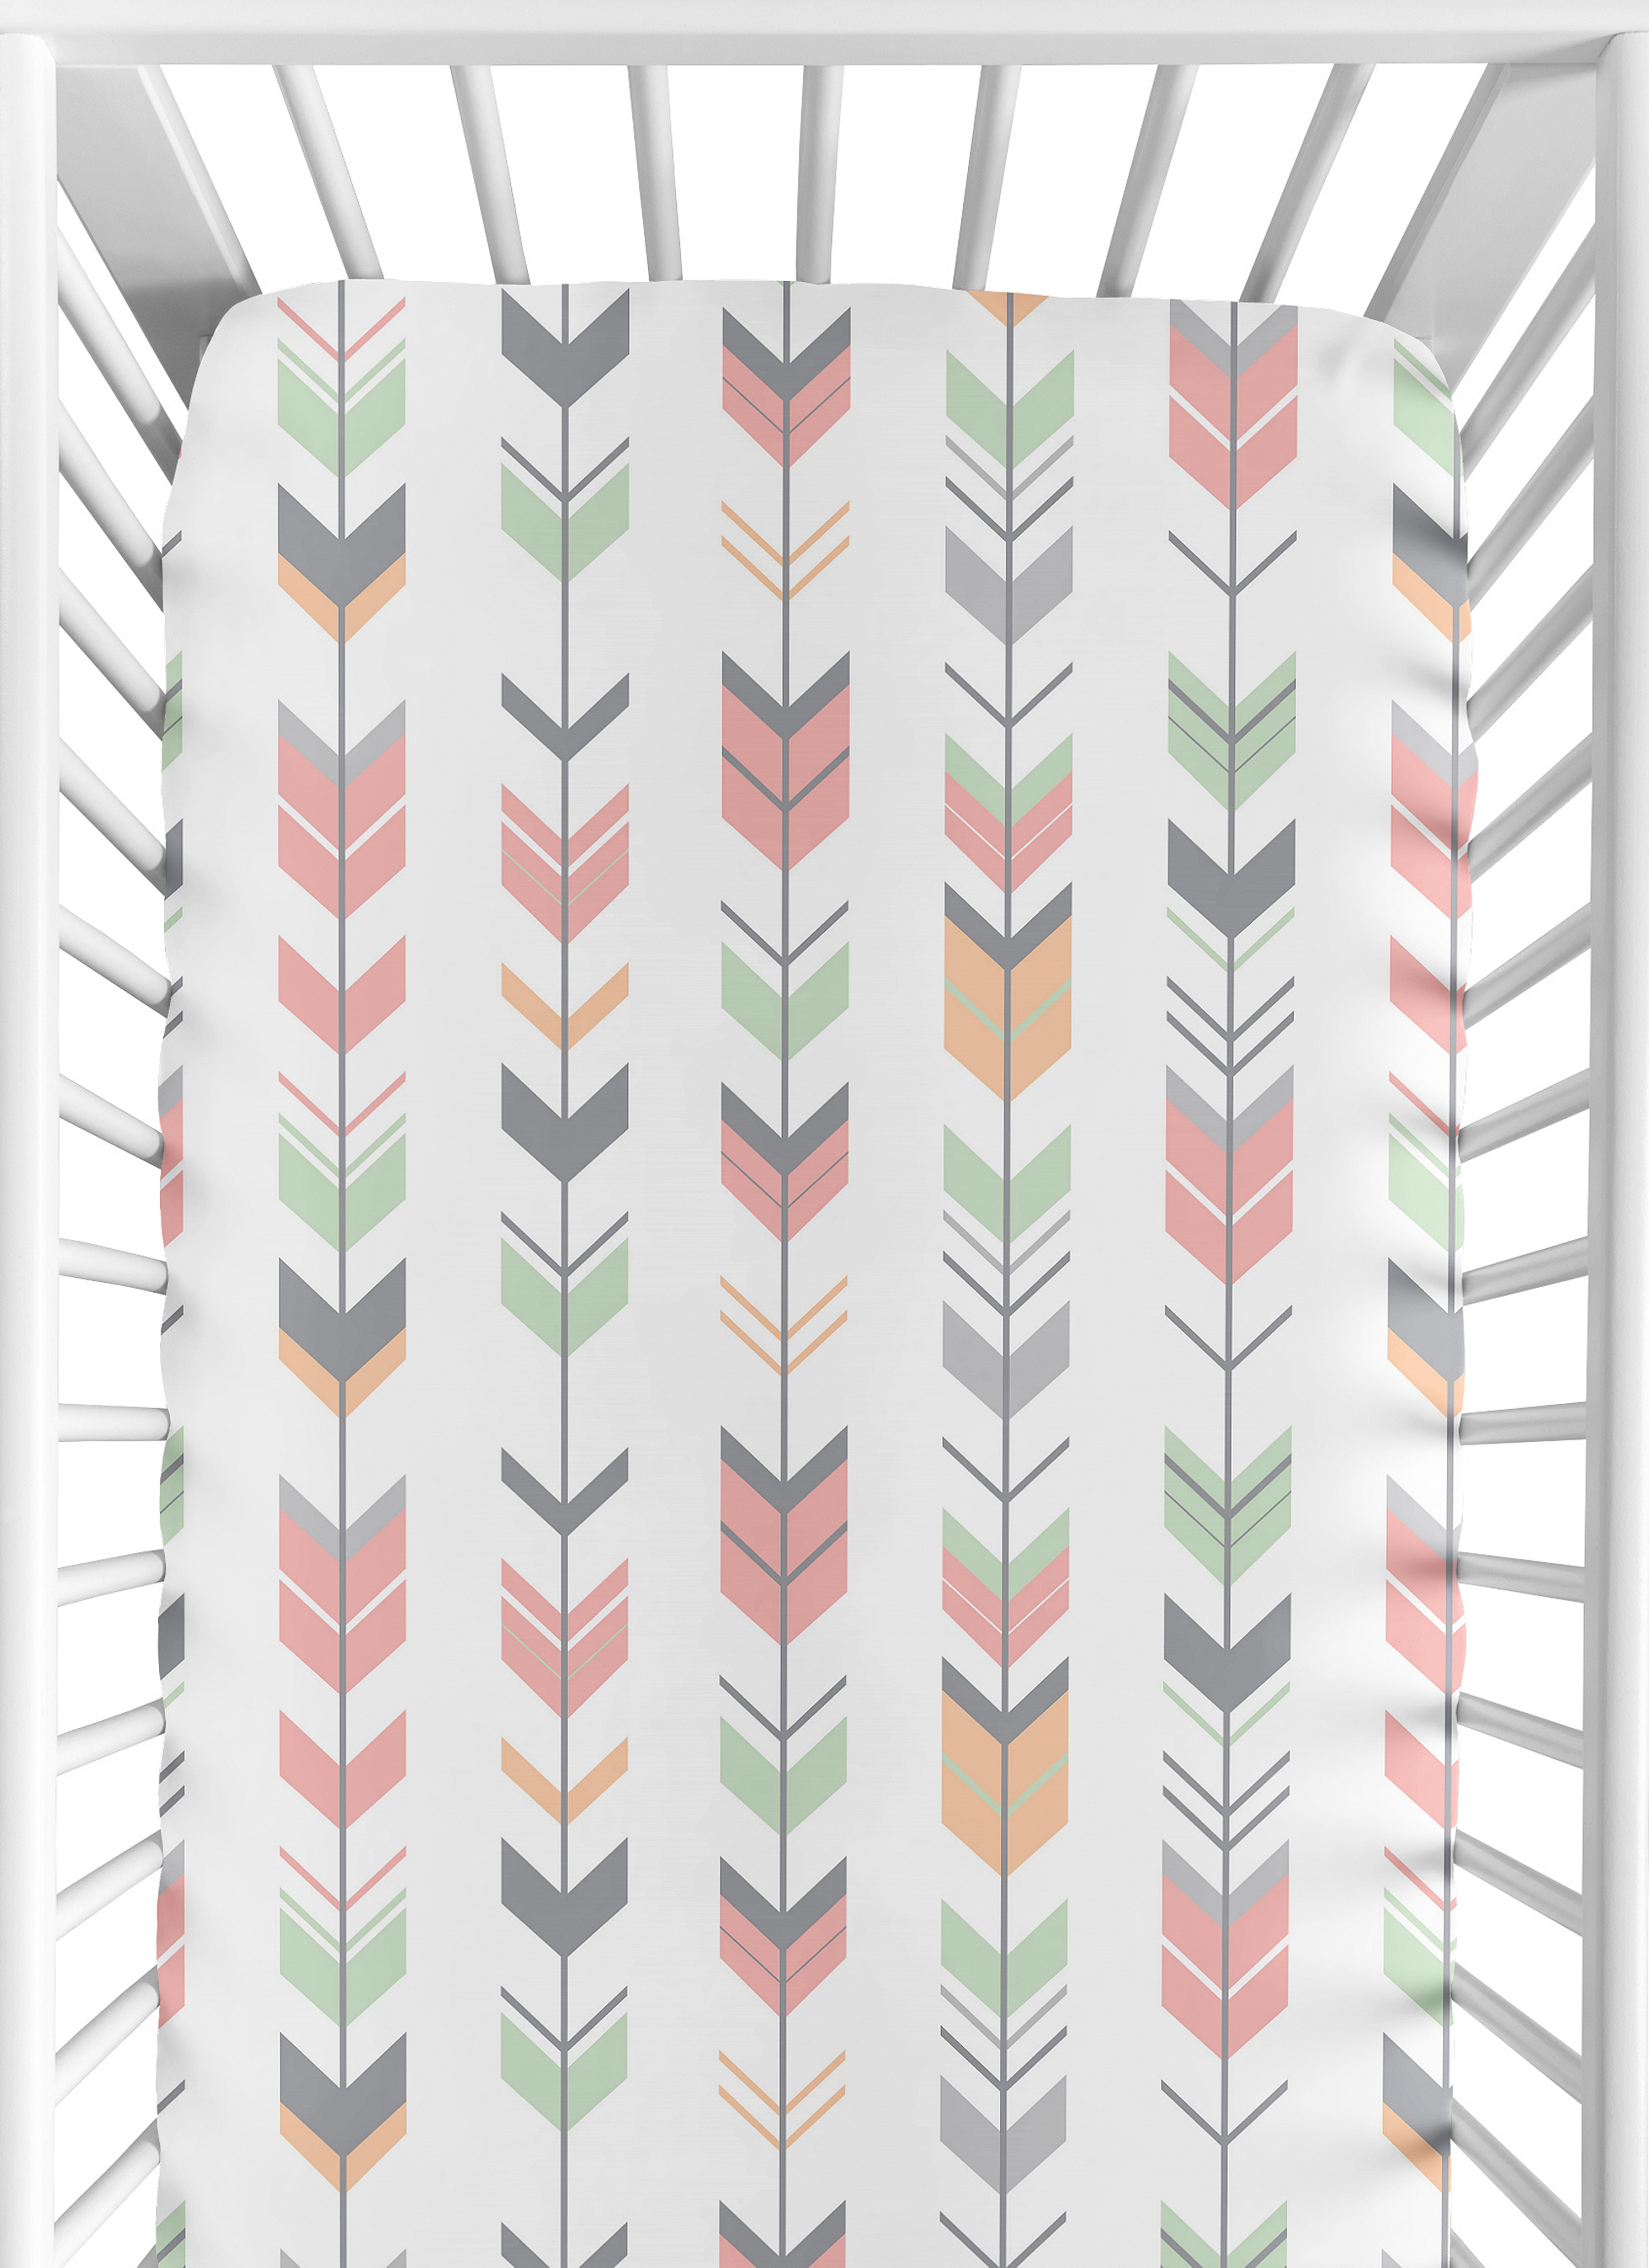 Sweet Jojo Fitted Baby Crib Toddler Sheet For Coral Woodsy Bedding Arrow Print 846480043225 Ebay